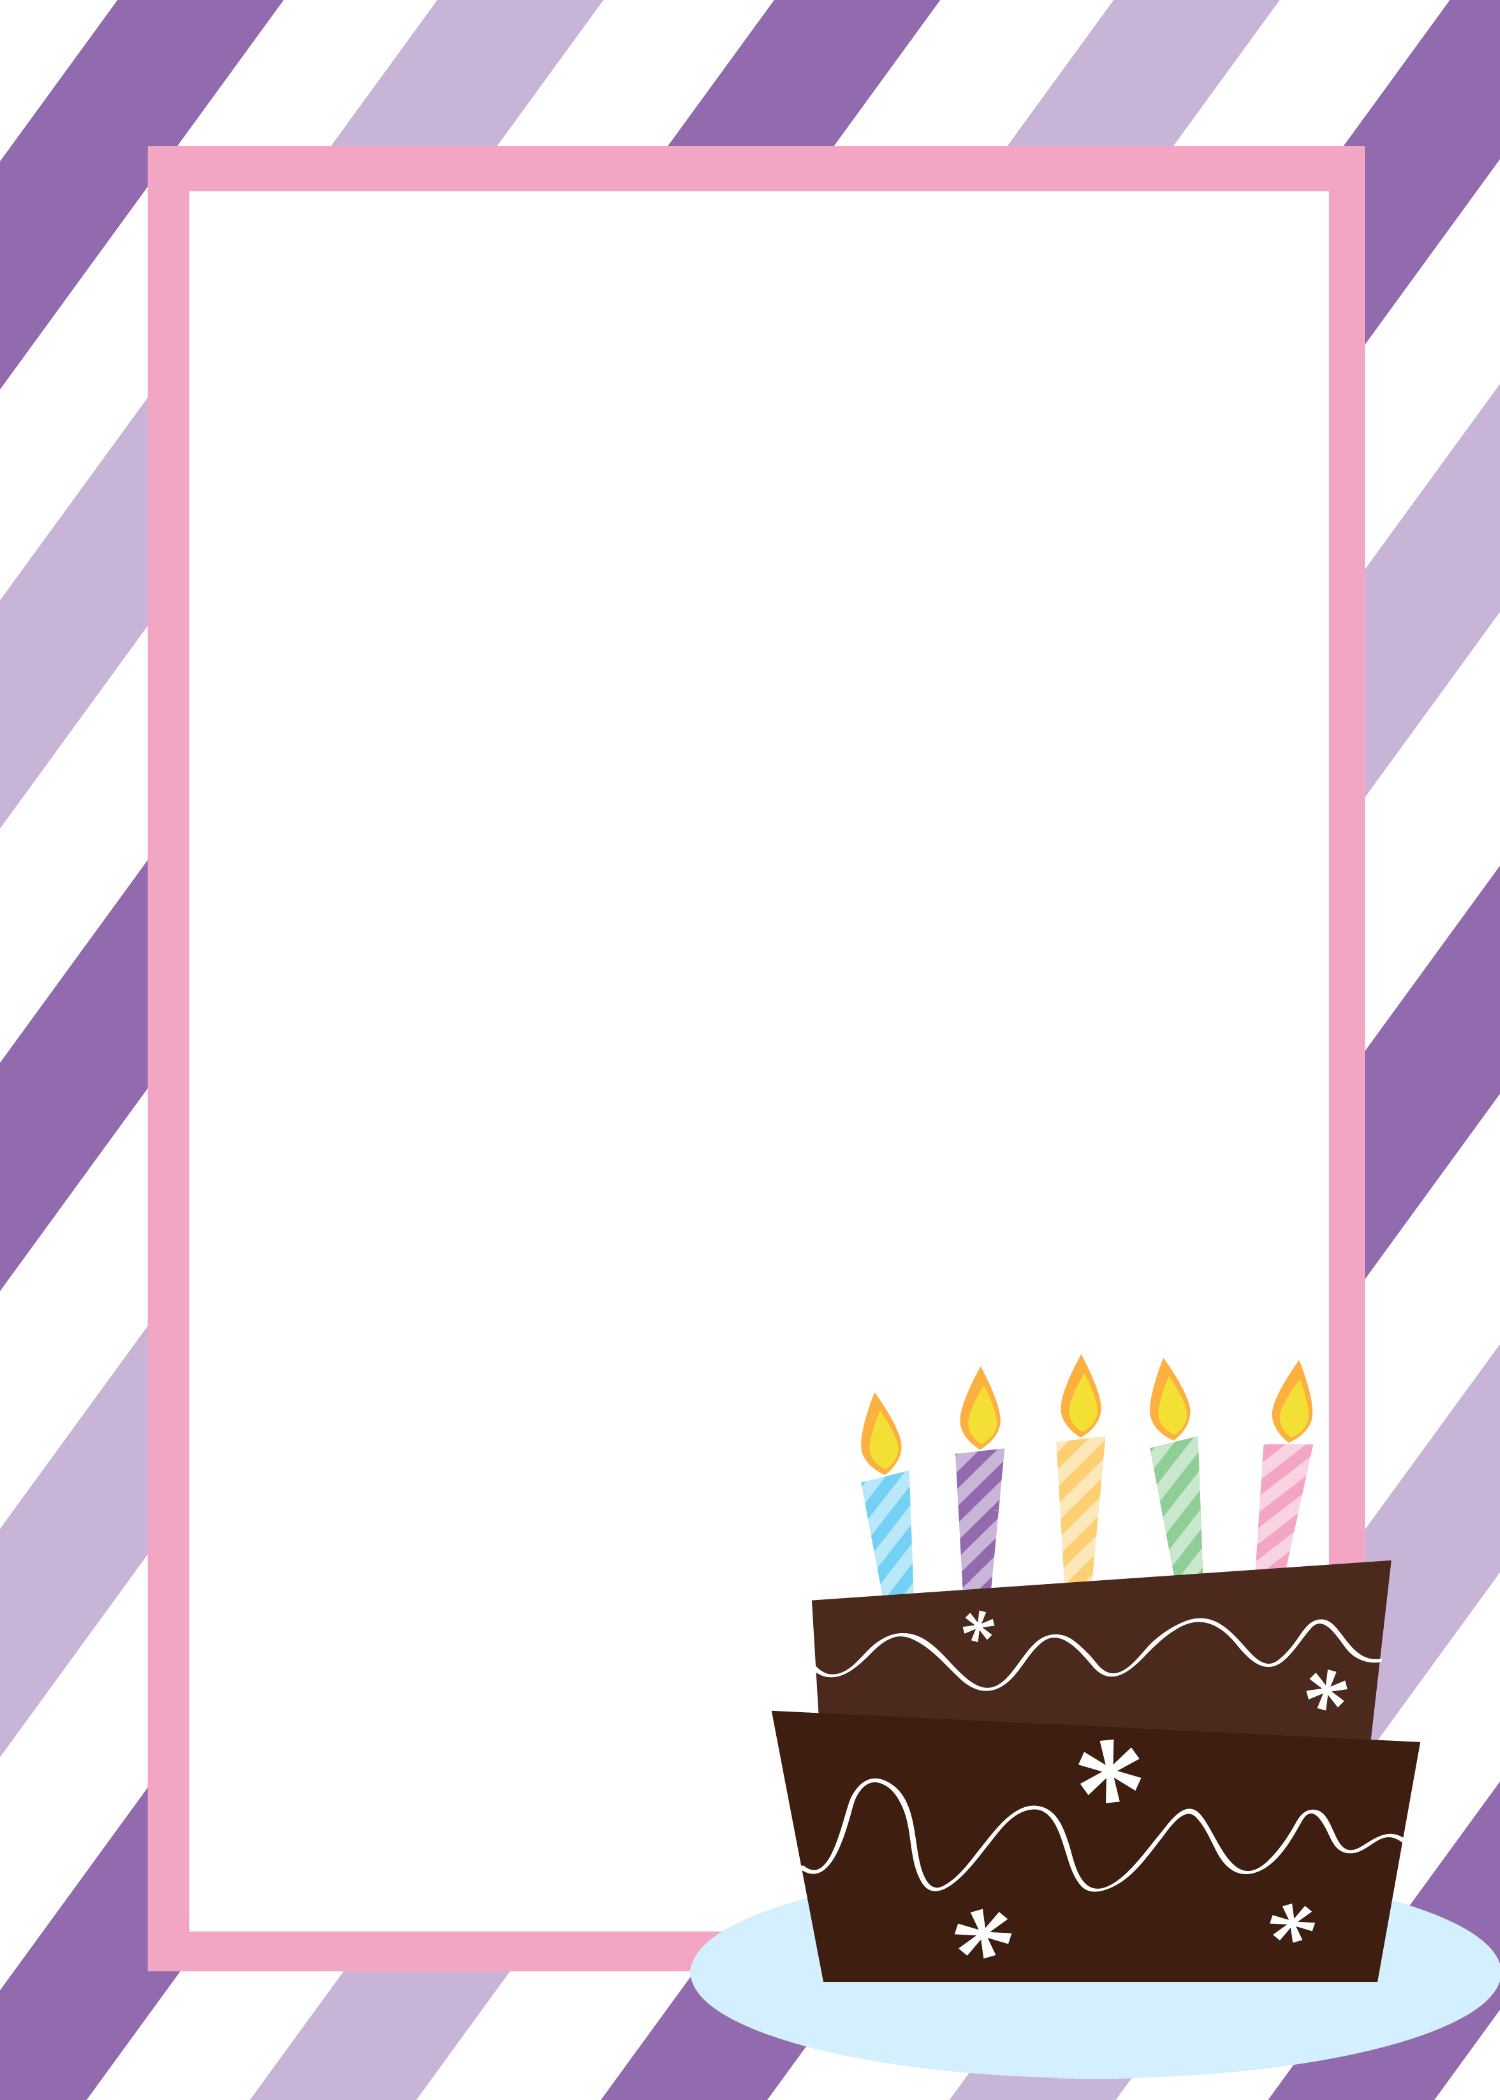 10 Best Images of Free Printable Blank Party Invitations ...